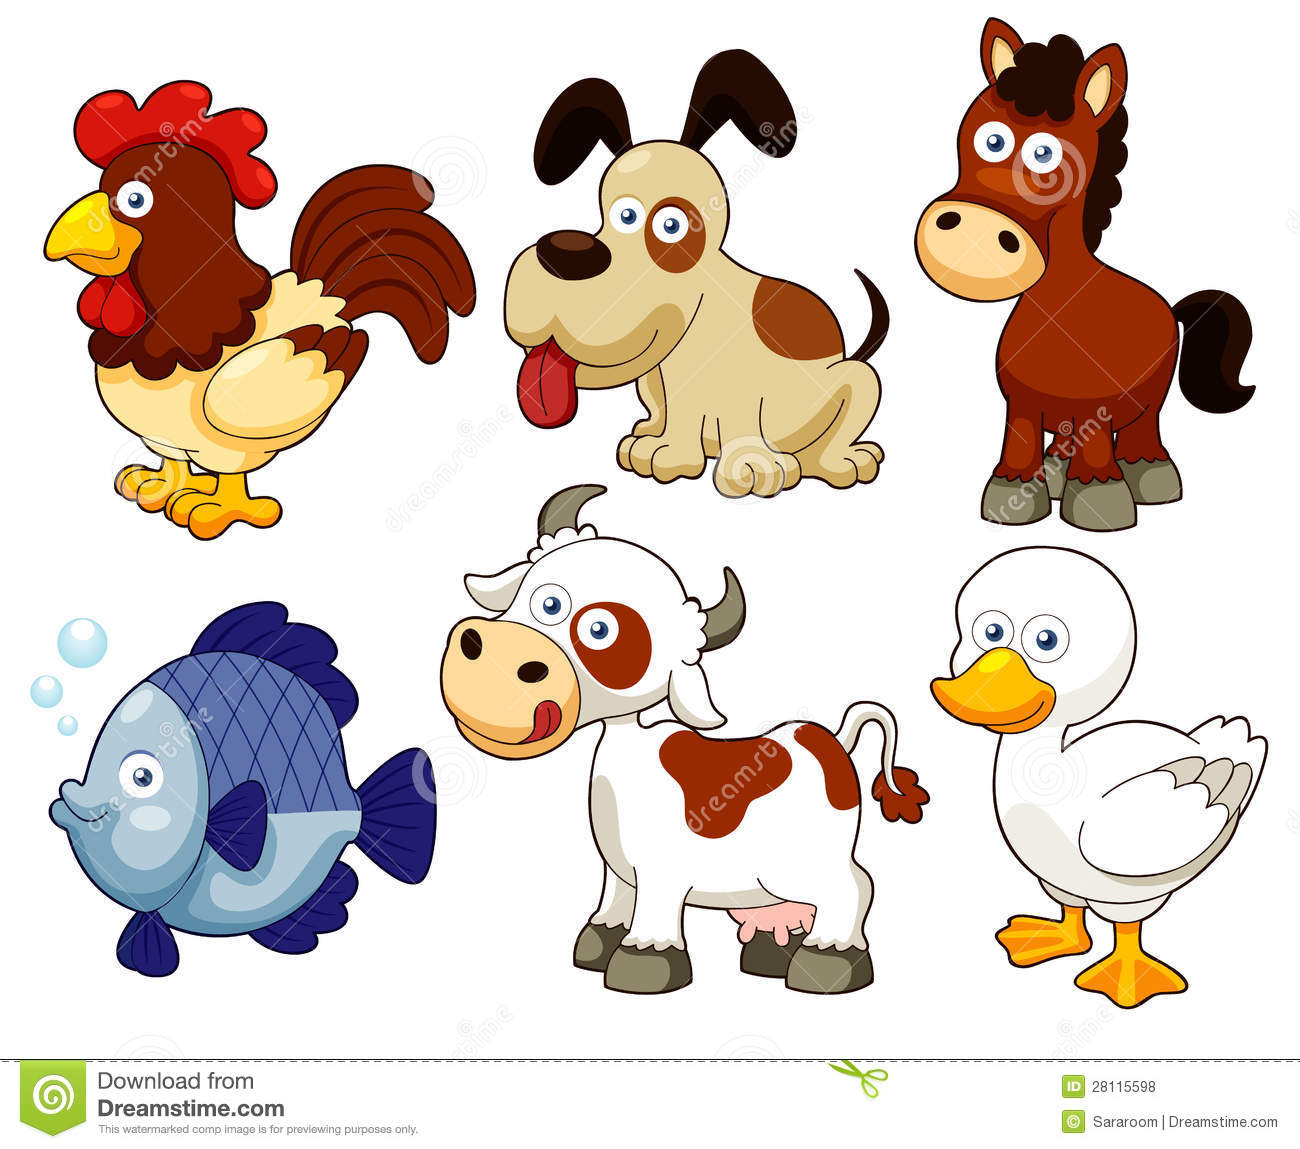 Land animals clipart 8 » Clipart Station.